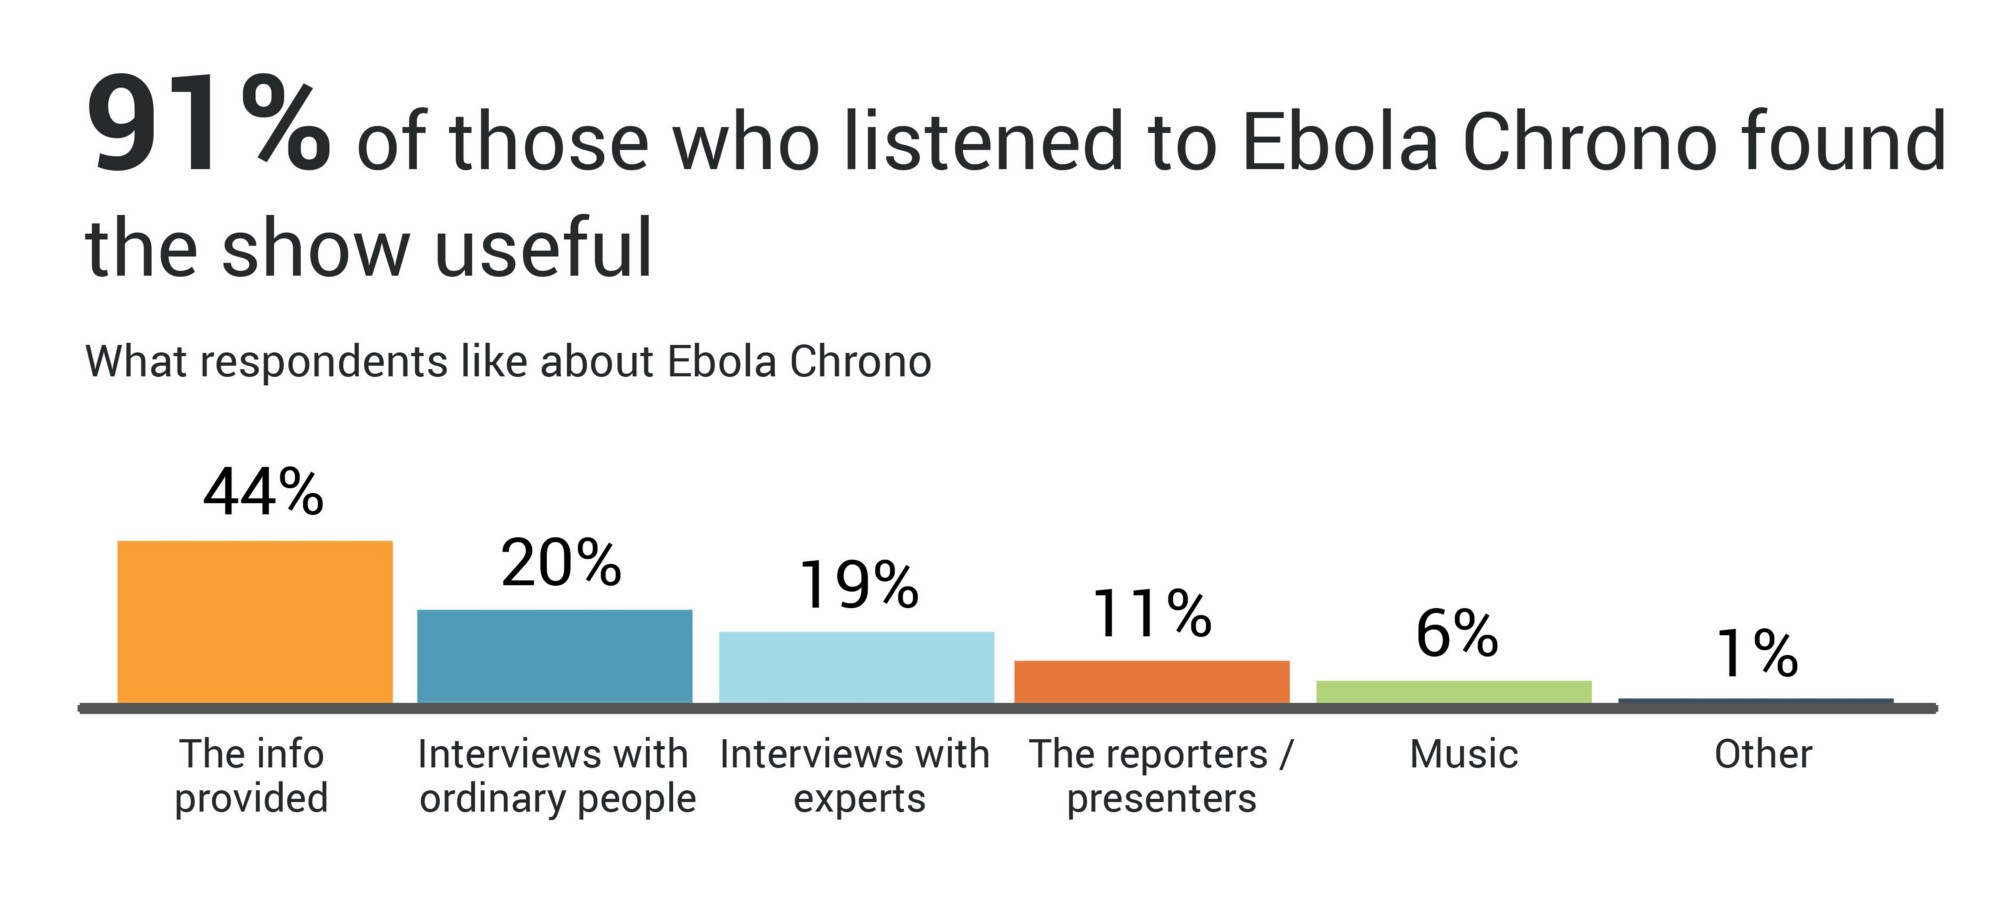 Bar graph showing what respondents like about Ebola Chrono